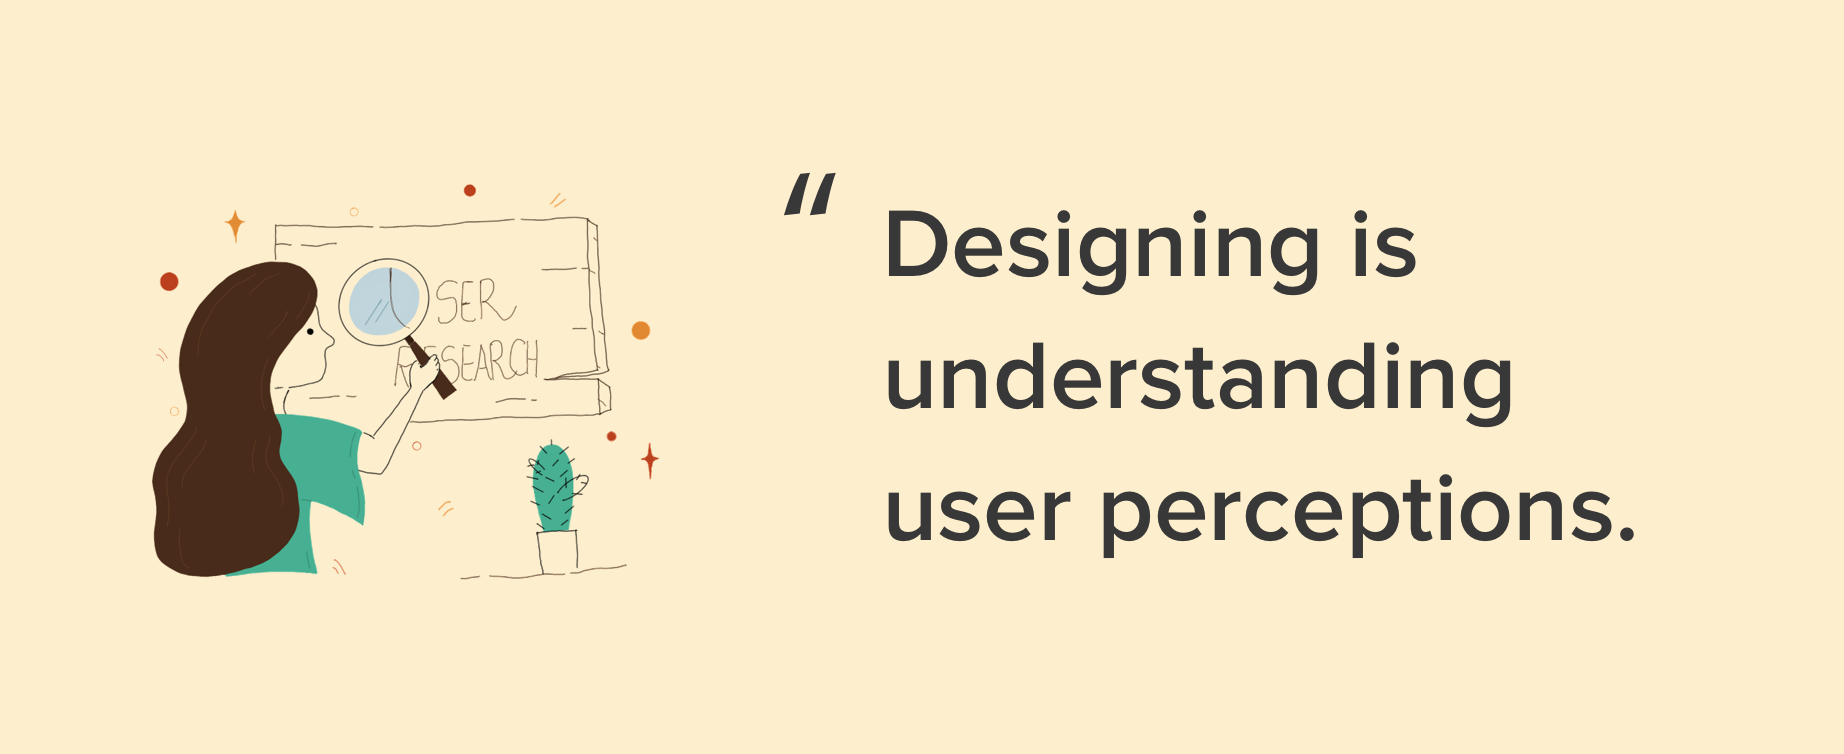 My Design Philosophy Statement The Meaning Of Designing Technologies By Barsa Tandukar Prototypr